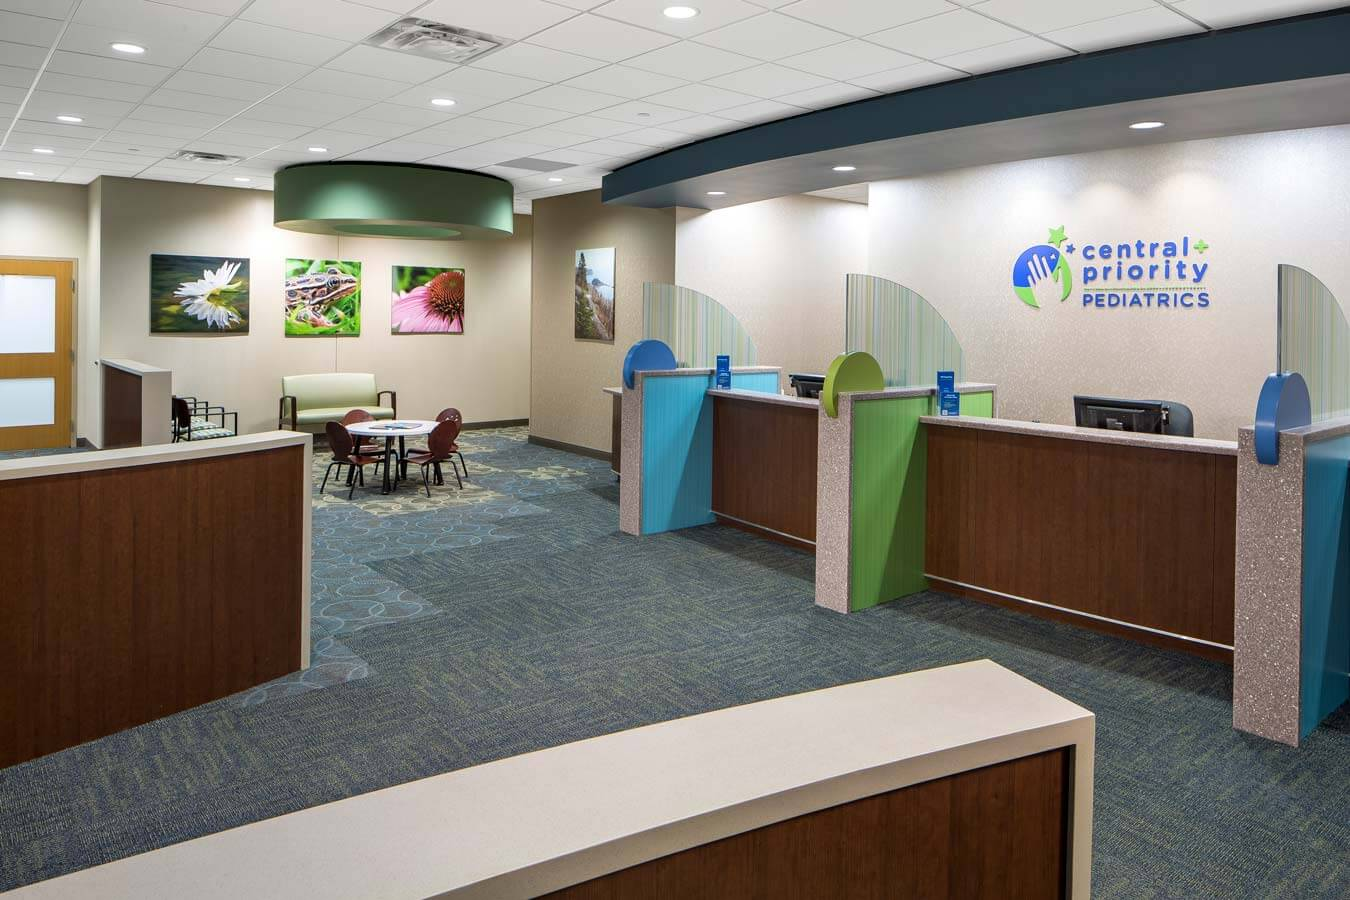 Mohagen Hansen | Architecture | Interior Design | Minneapolis |Central Pediatrics